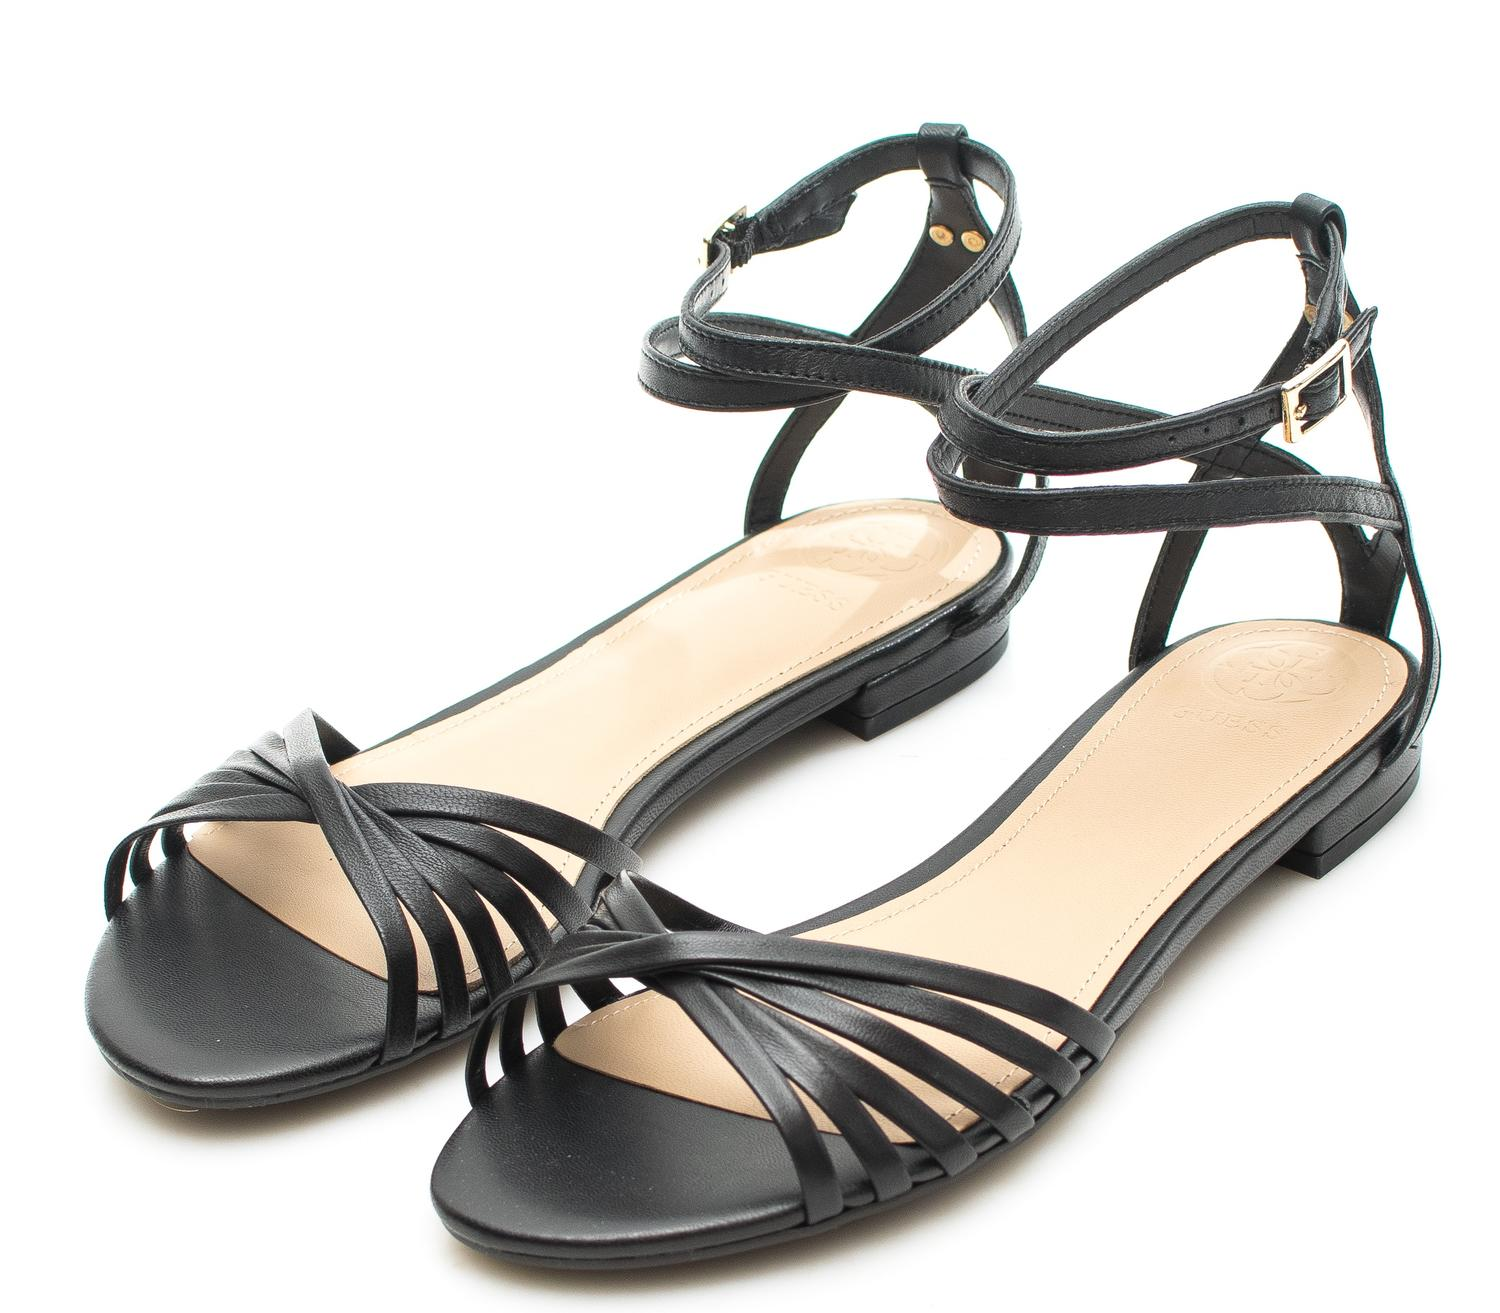 Sandals At Leather Shop Best Prices Ramziein Nv8nwom0 Guess Black Online 9YDHEI2eW